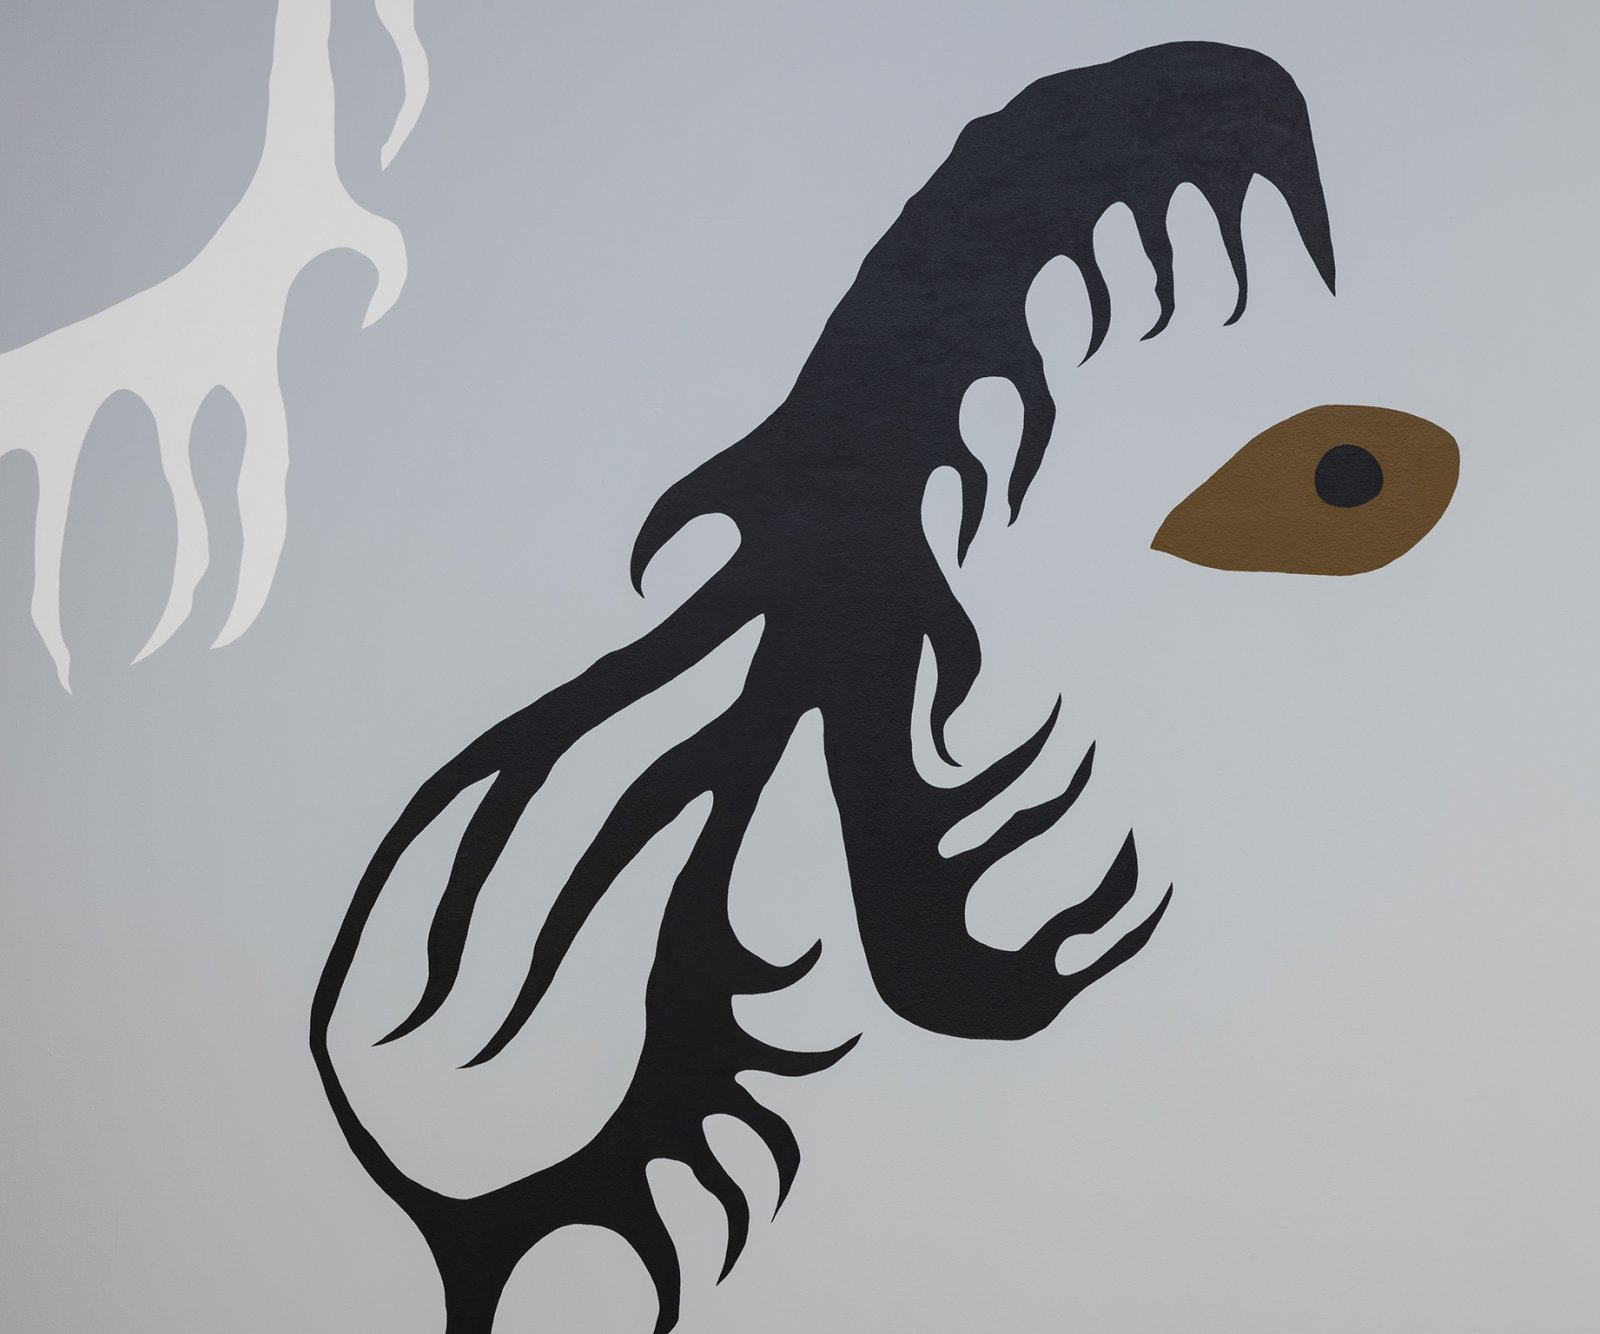 Duane Linklater, Earth Mother Hair, Indian Hair, and Earth Mother Eyes, Indian Eyes, Animal Eyes (detail), 2017, paint on interior wall of the Musée d'art contemporain de Montréal, from a series of small paintings of eyes and hair based on a photo of Norval Morrisseau's Earth Mother and Her Children (1967), painting labour by Julie Ouellet, absence of the artist, dimensions variable. Installation view, In Search of Expo 67, Musée d'art contemporain de Montréal, 2017